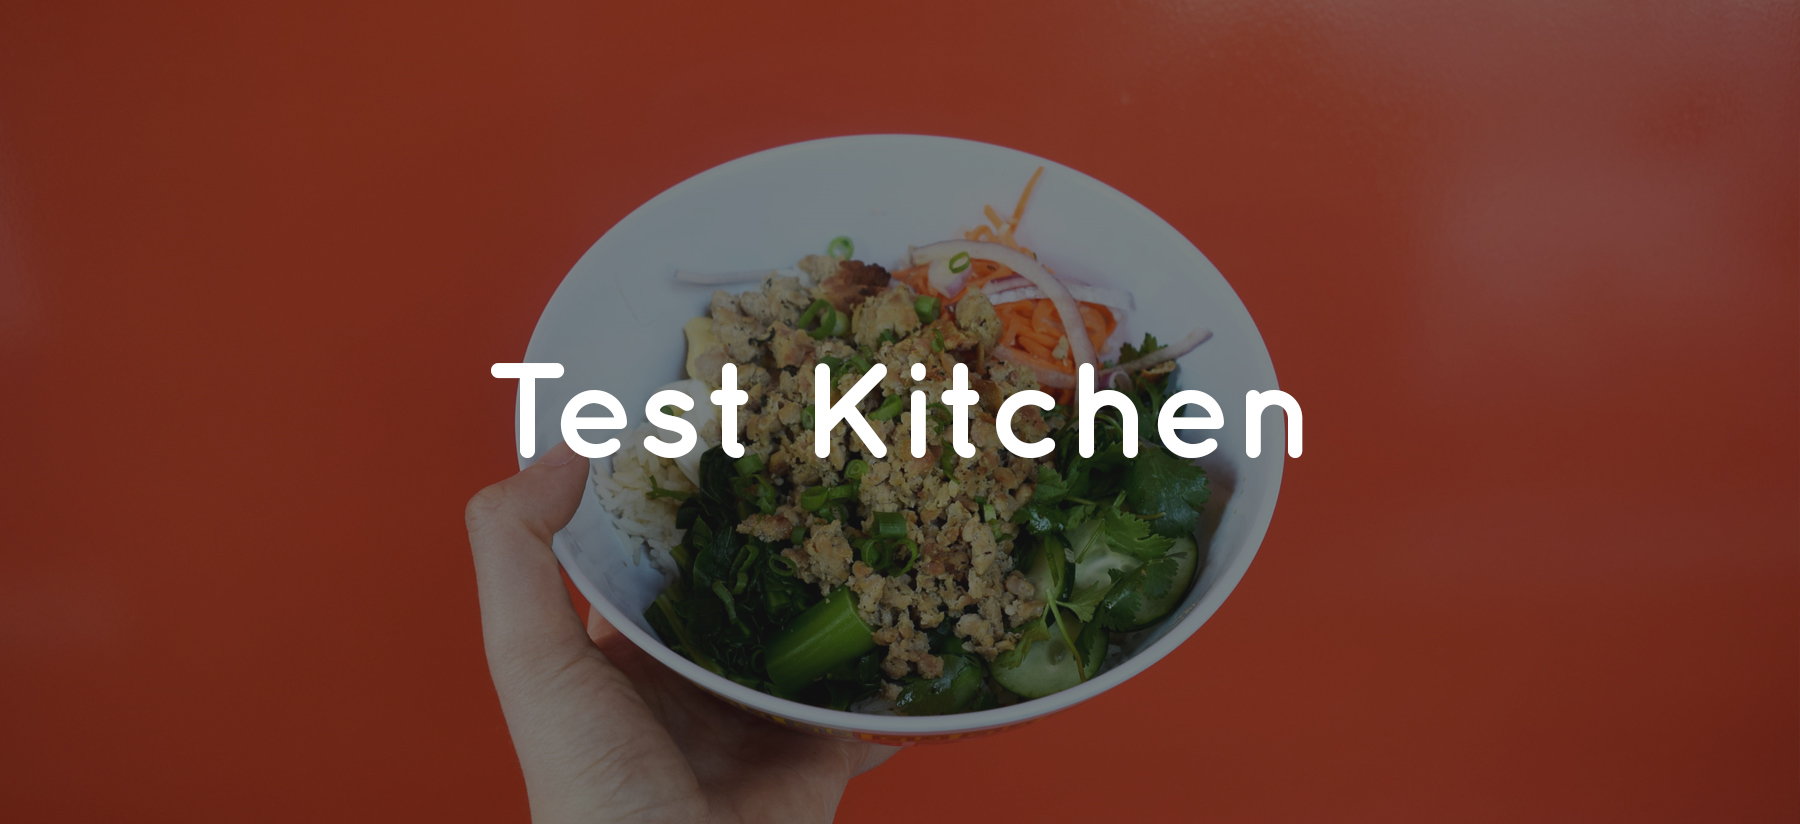 TEST KITCHEN 5.jpg